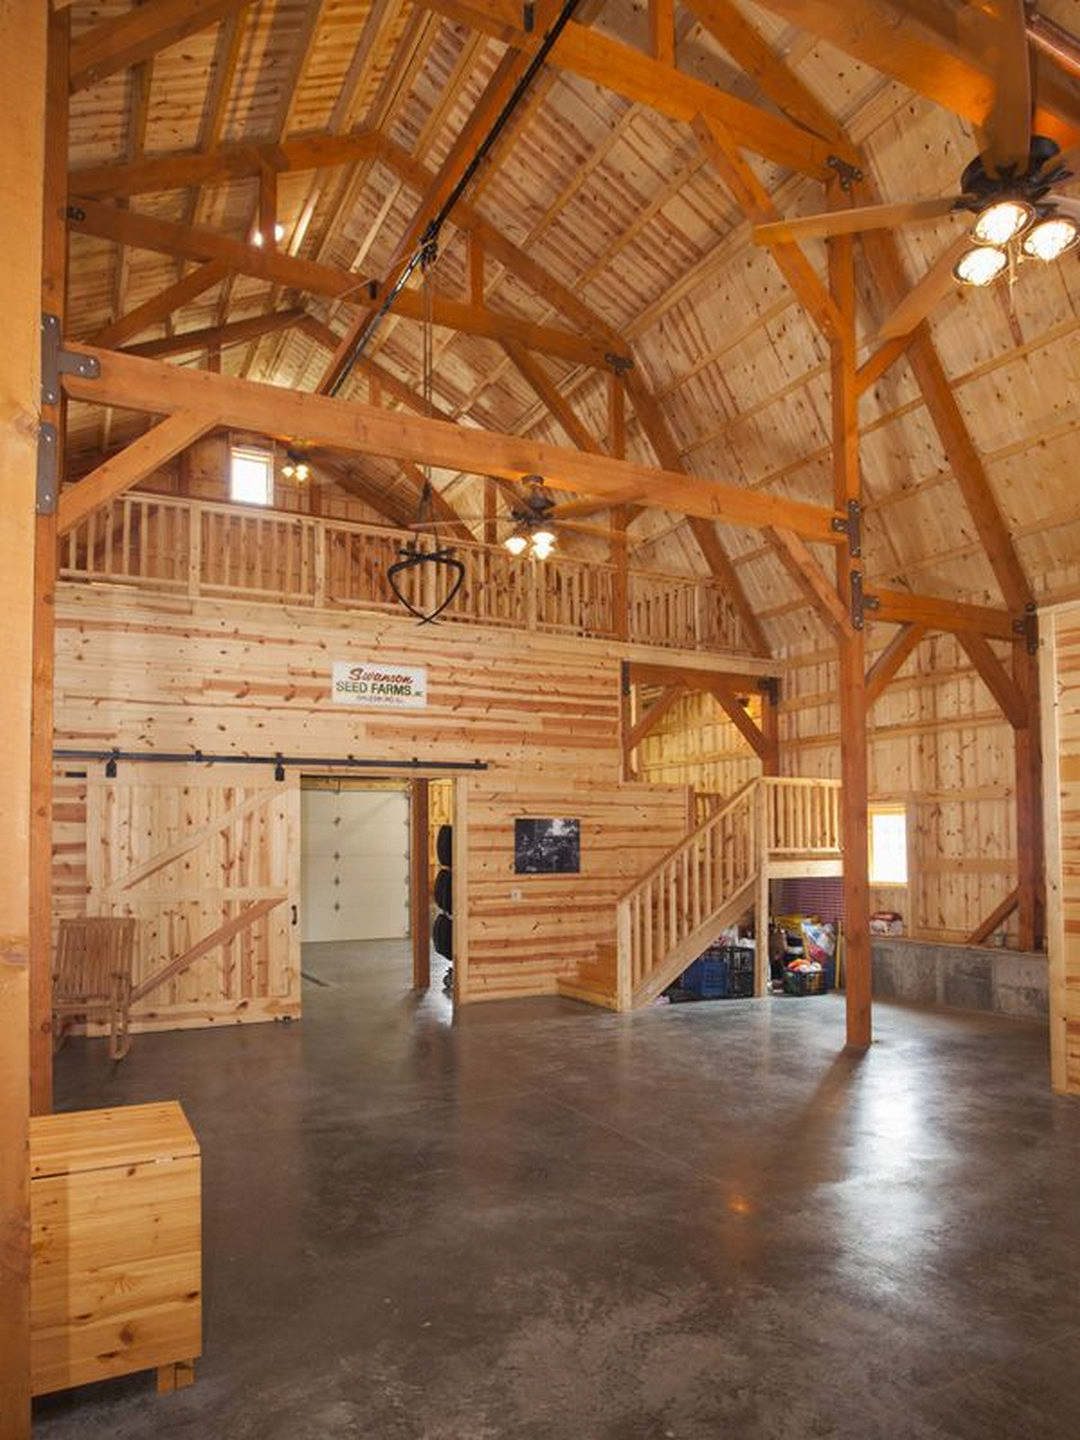 87 Barn Style Interior Design Ideas | Gorgeous Interior ...